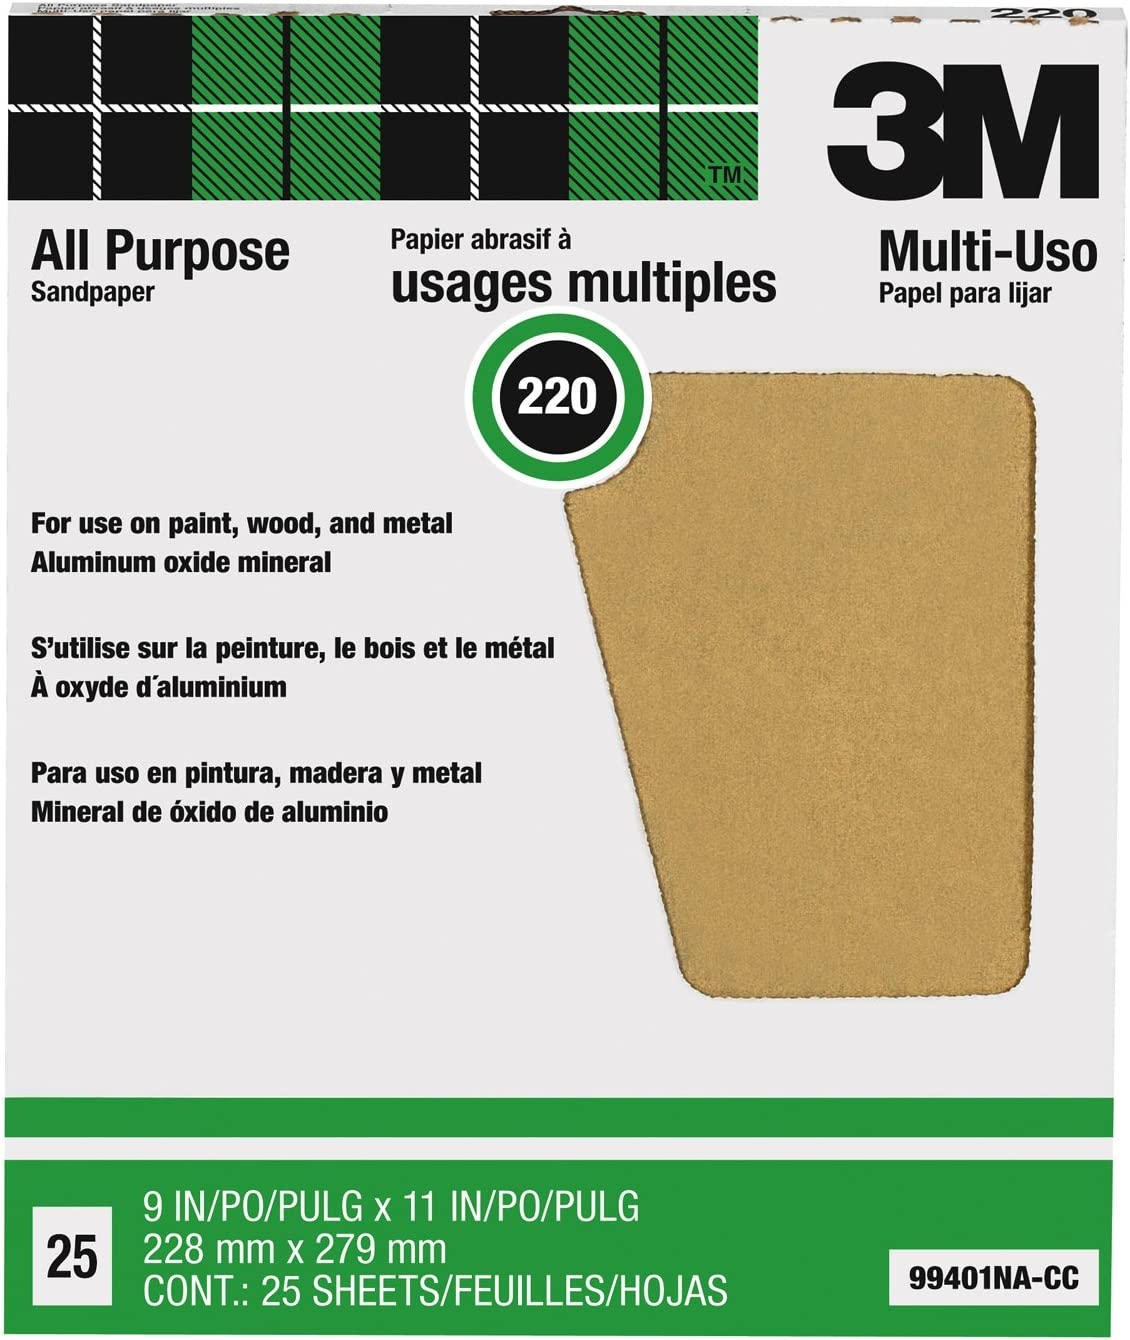 3M Pro-Pak Aluminum Oxide Sheet for Paint and Rust Removal 9-Inch by 11-Inch 25 sheets 220-Grit